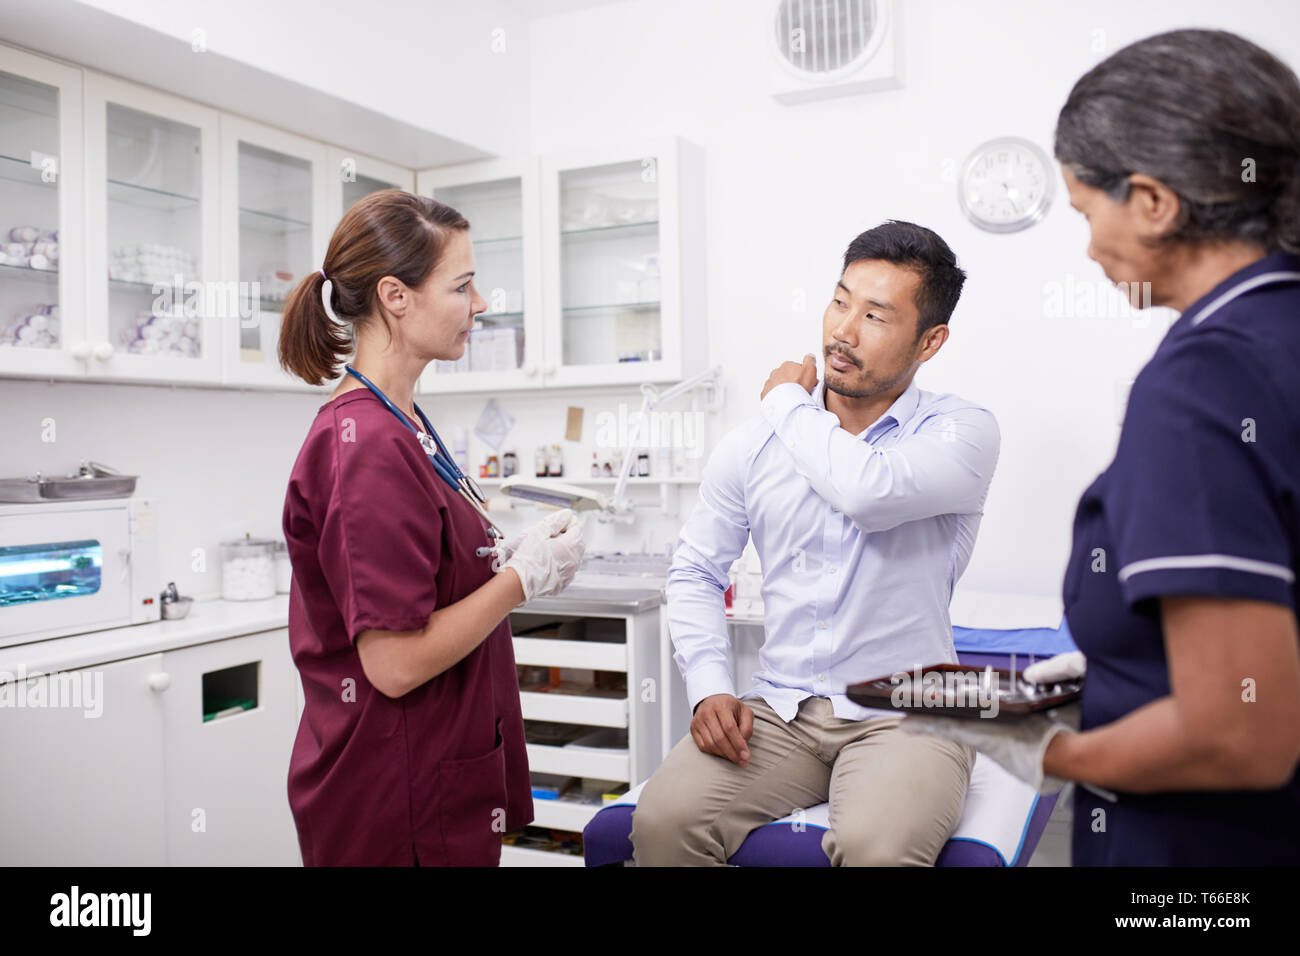 Male patient explaining shoulder pain to female doctor in clinic examination room Stock Photo